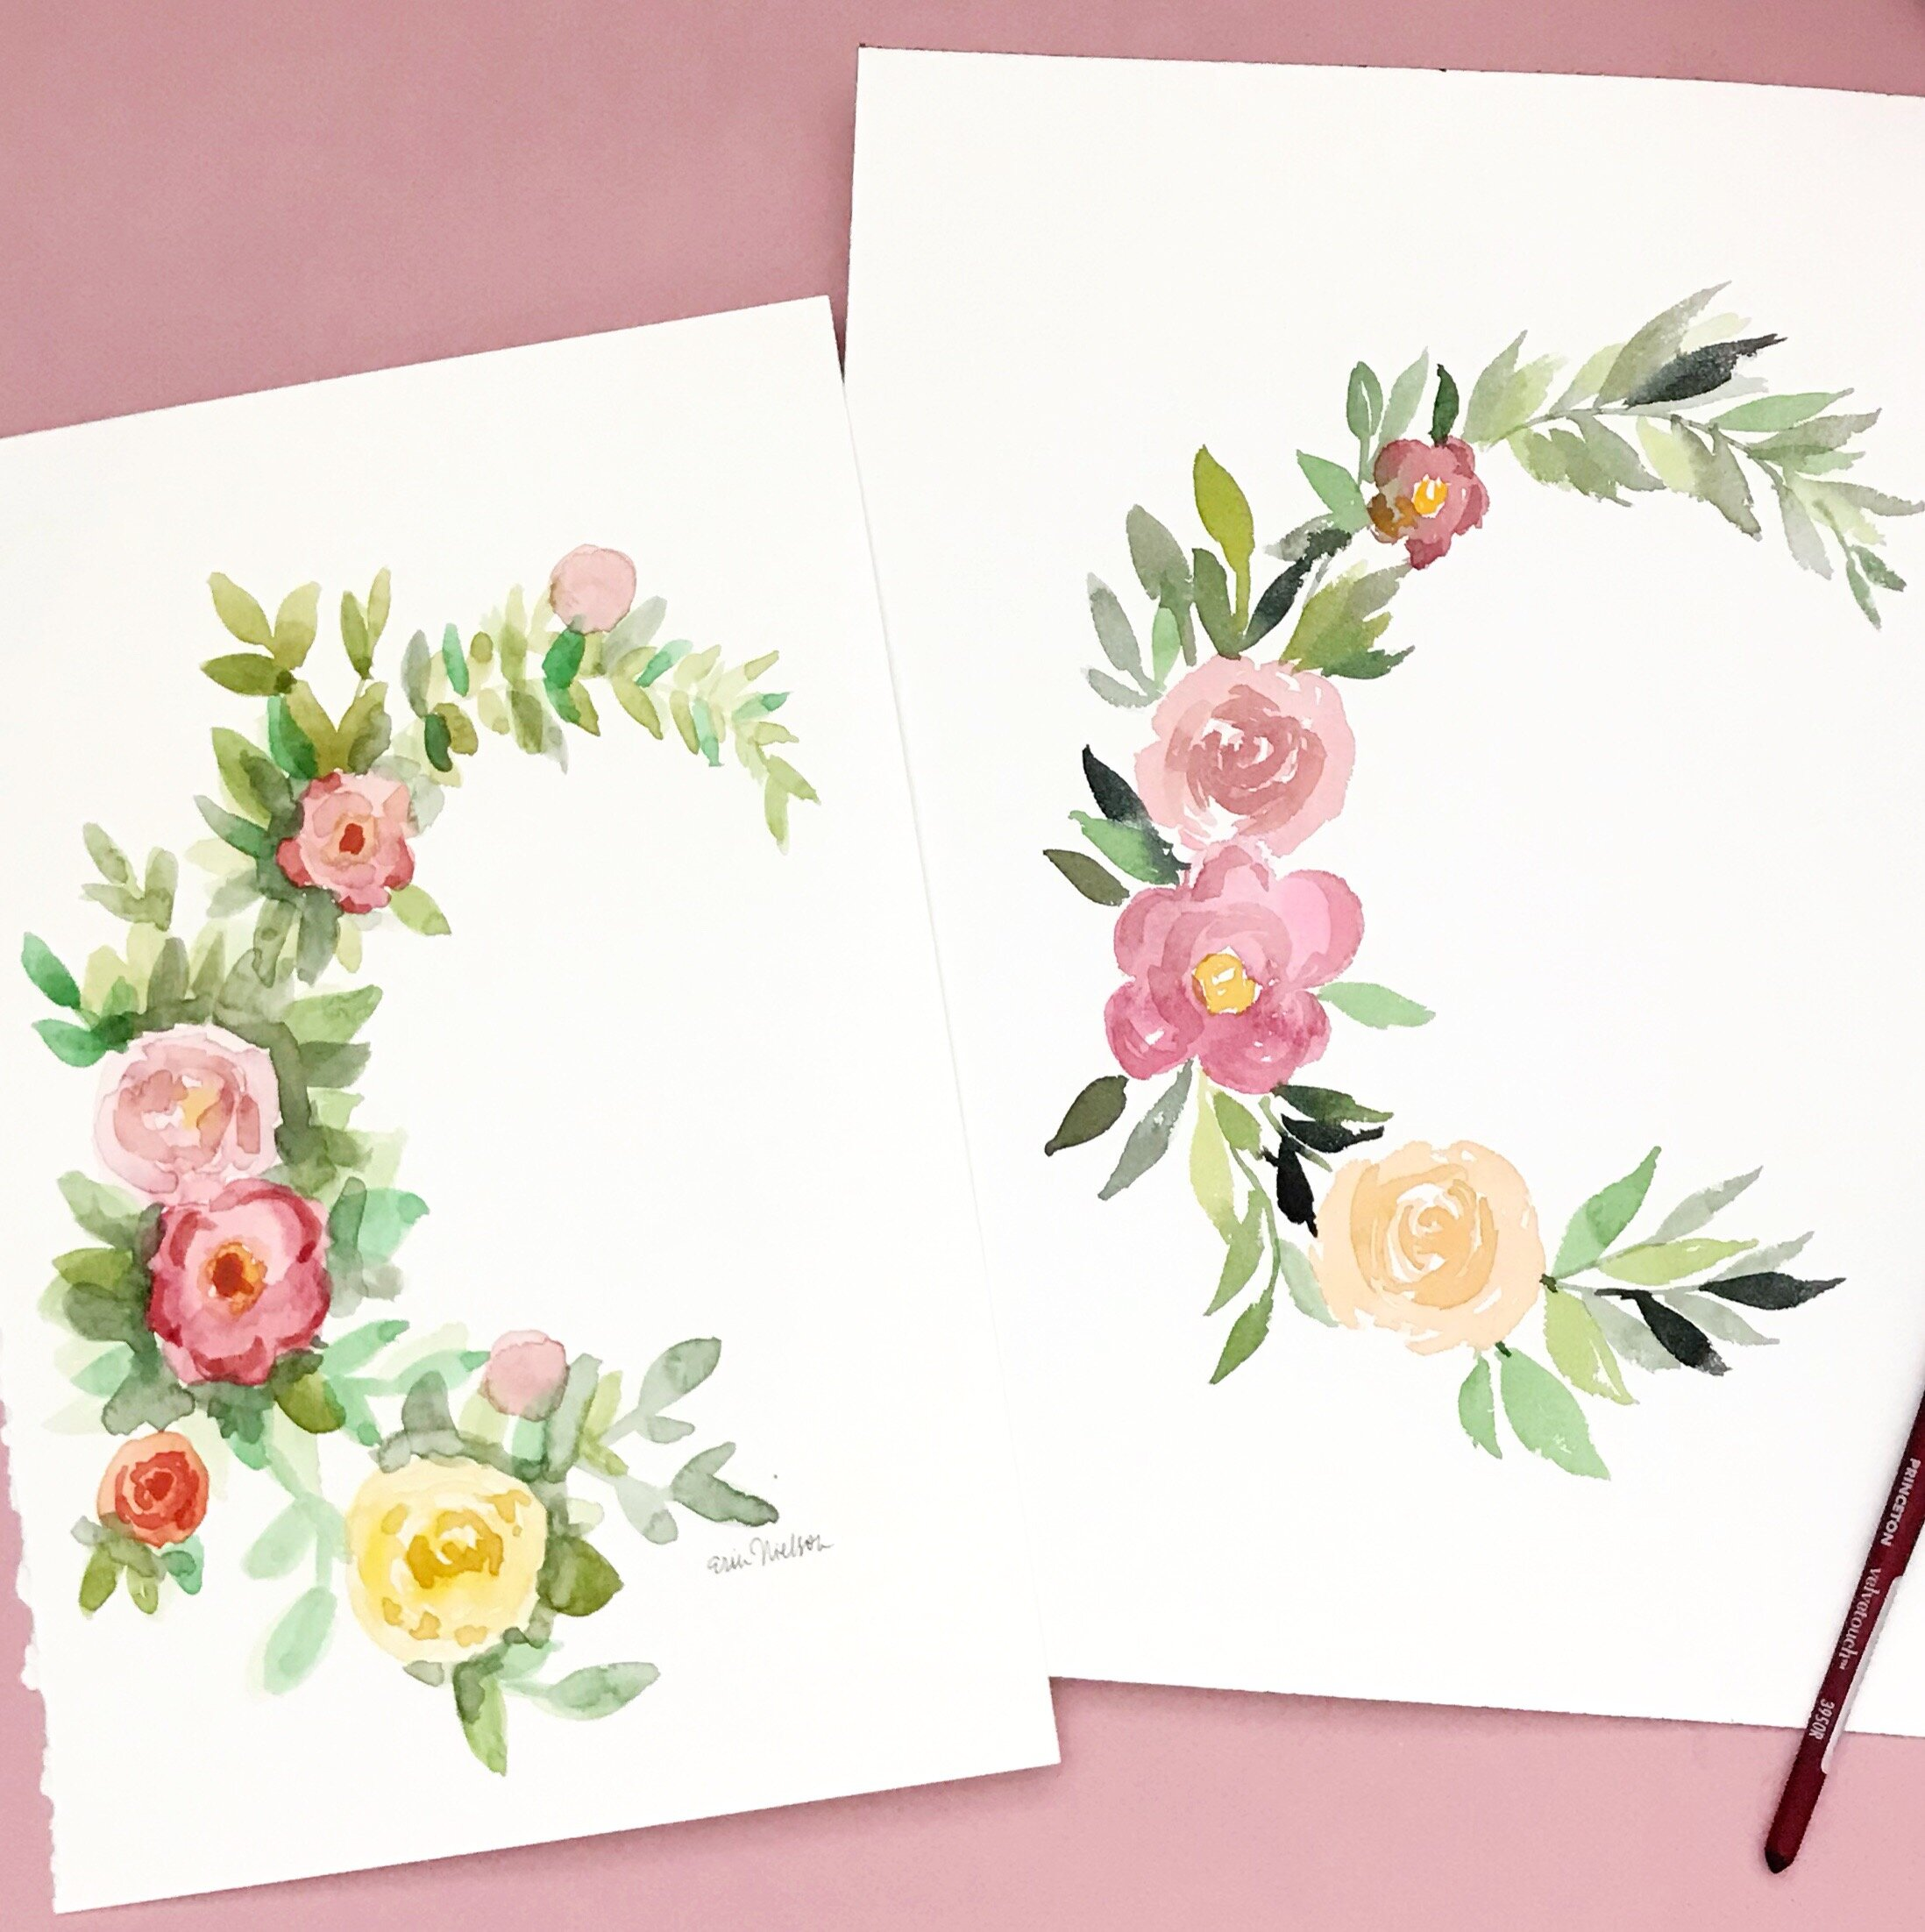 The blobby flowers on the left? That's where I started! The flowers on the right? That's how I'm painting now, and I'll show you how, too!